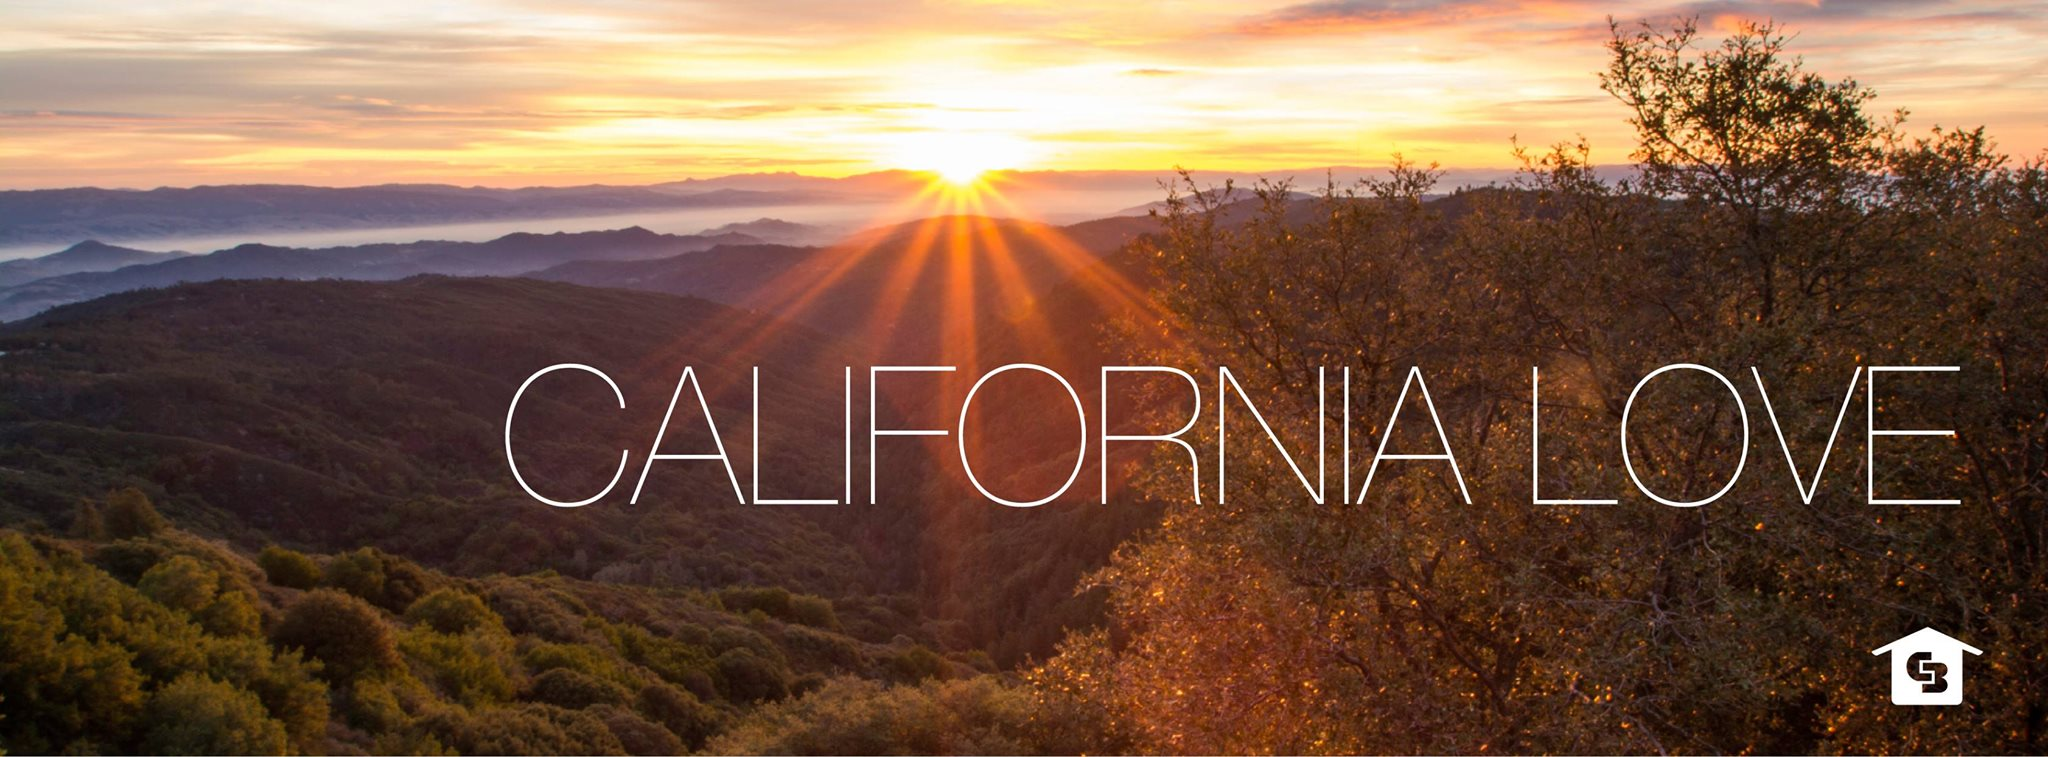 fb-covers-california-love-peninsula.jpg